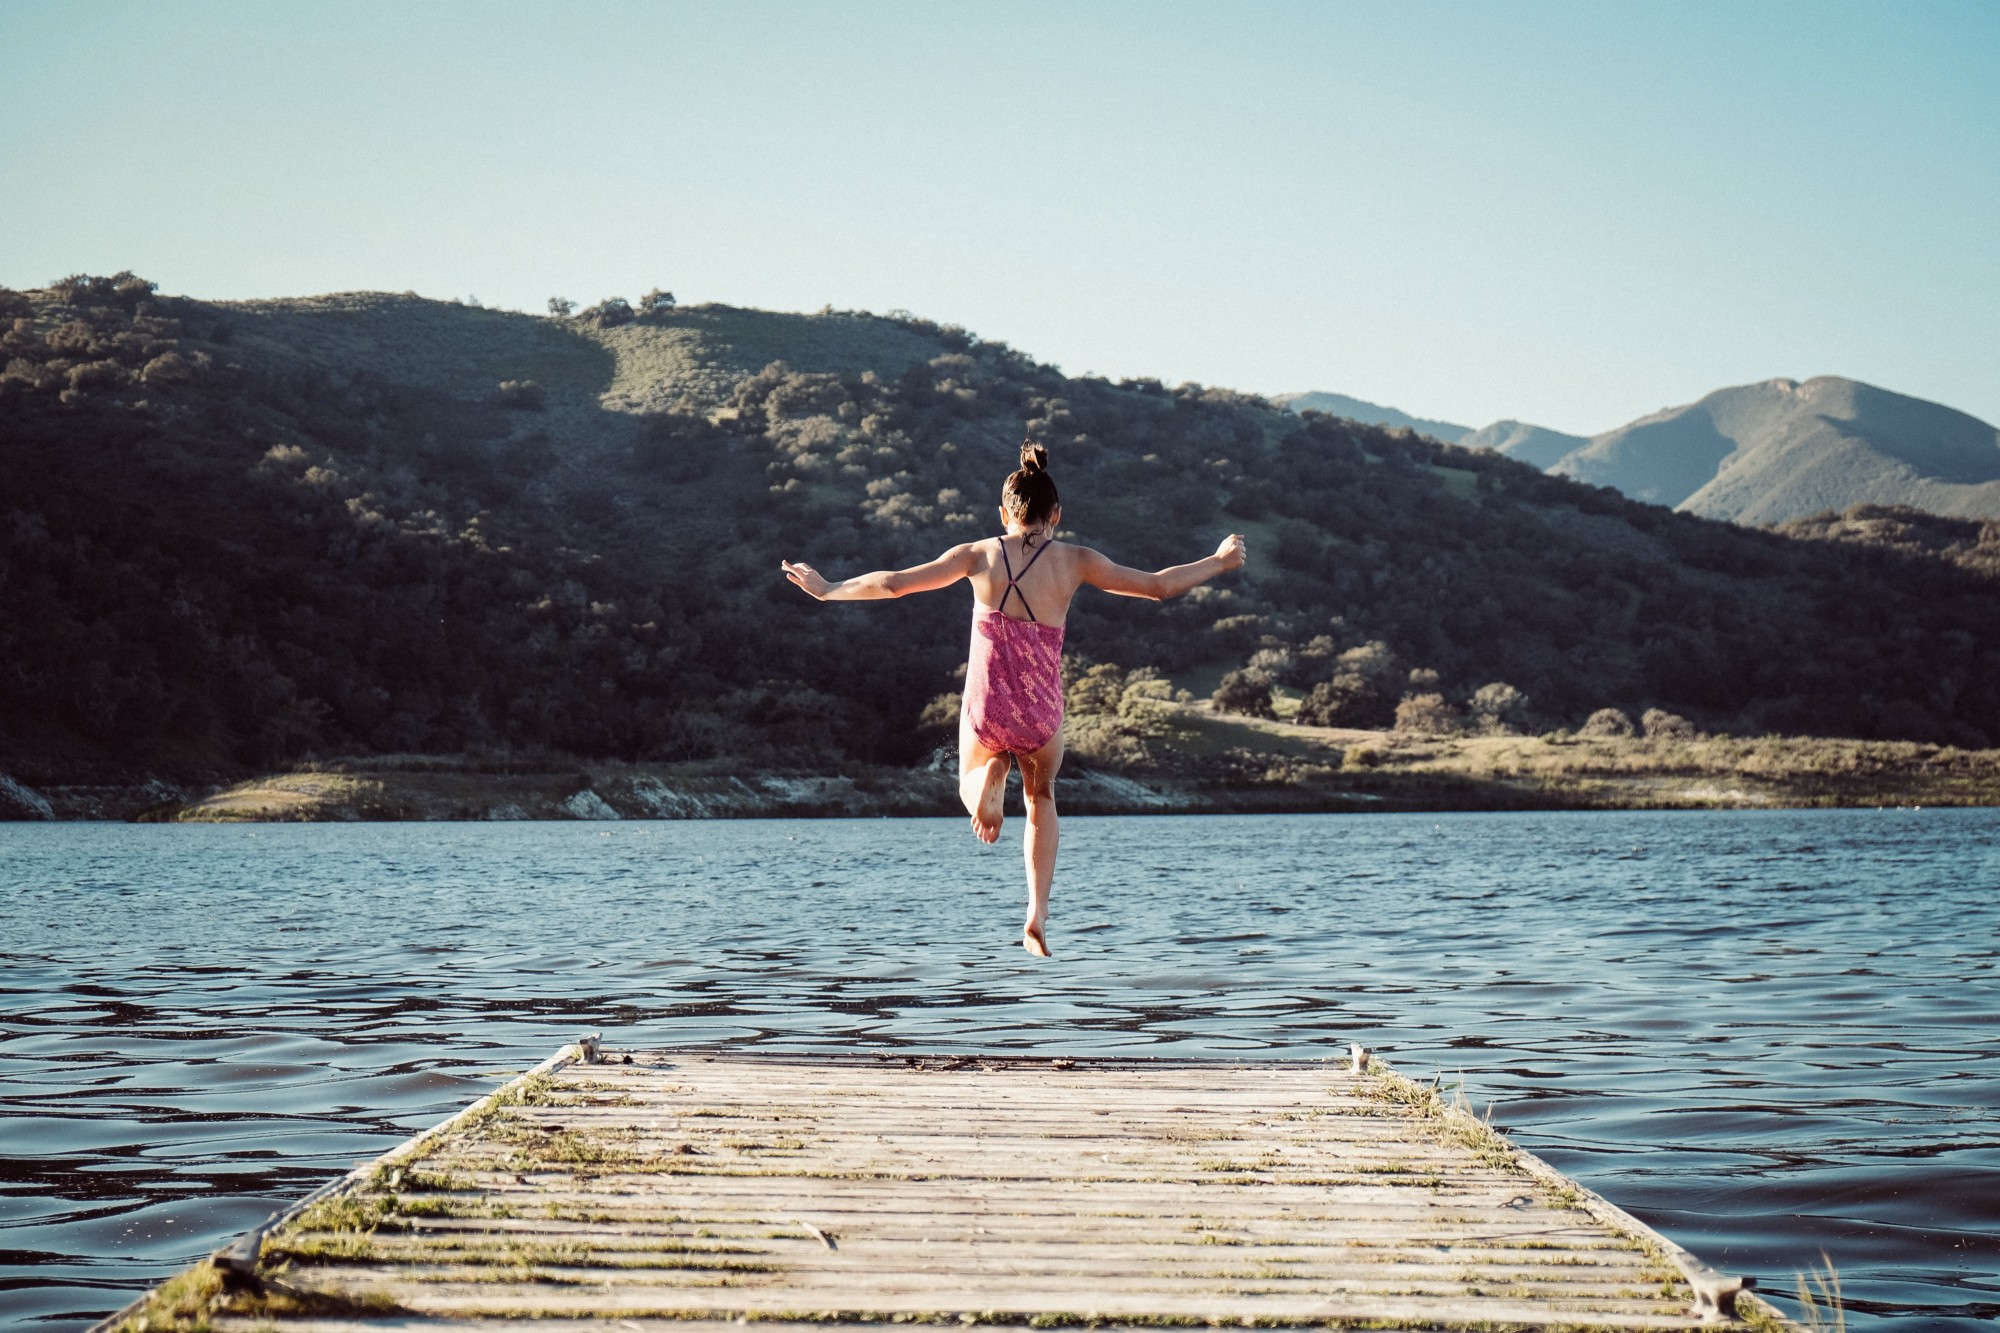 Girl in pink swimming costume jumping into a lake. Mountains are behind her.